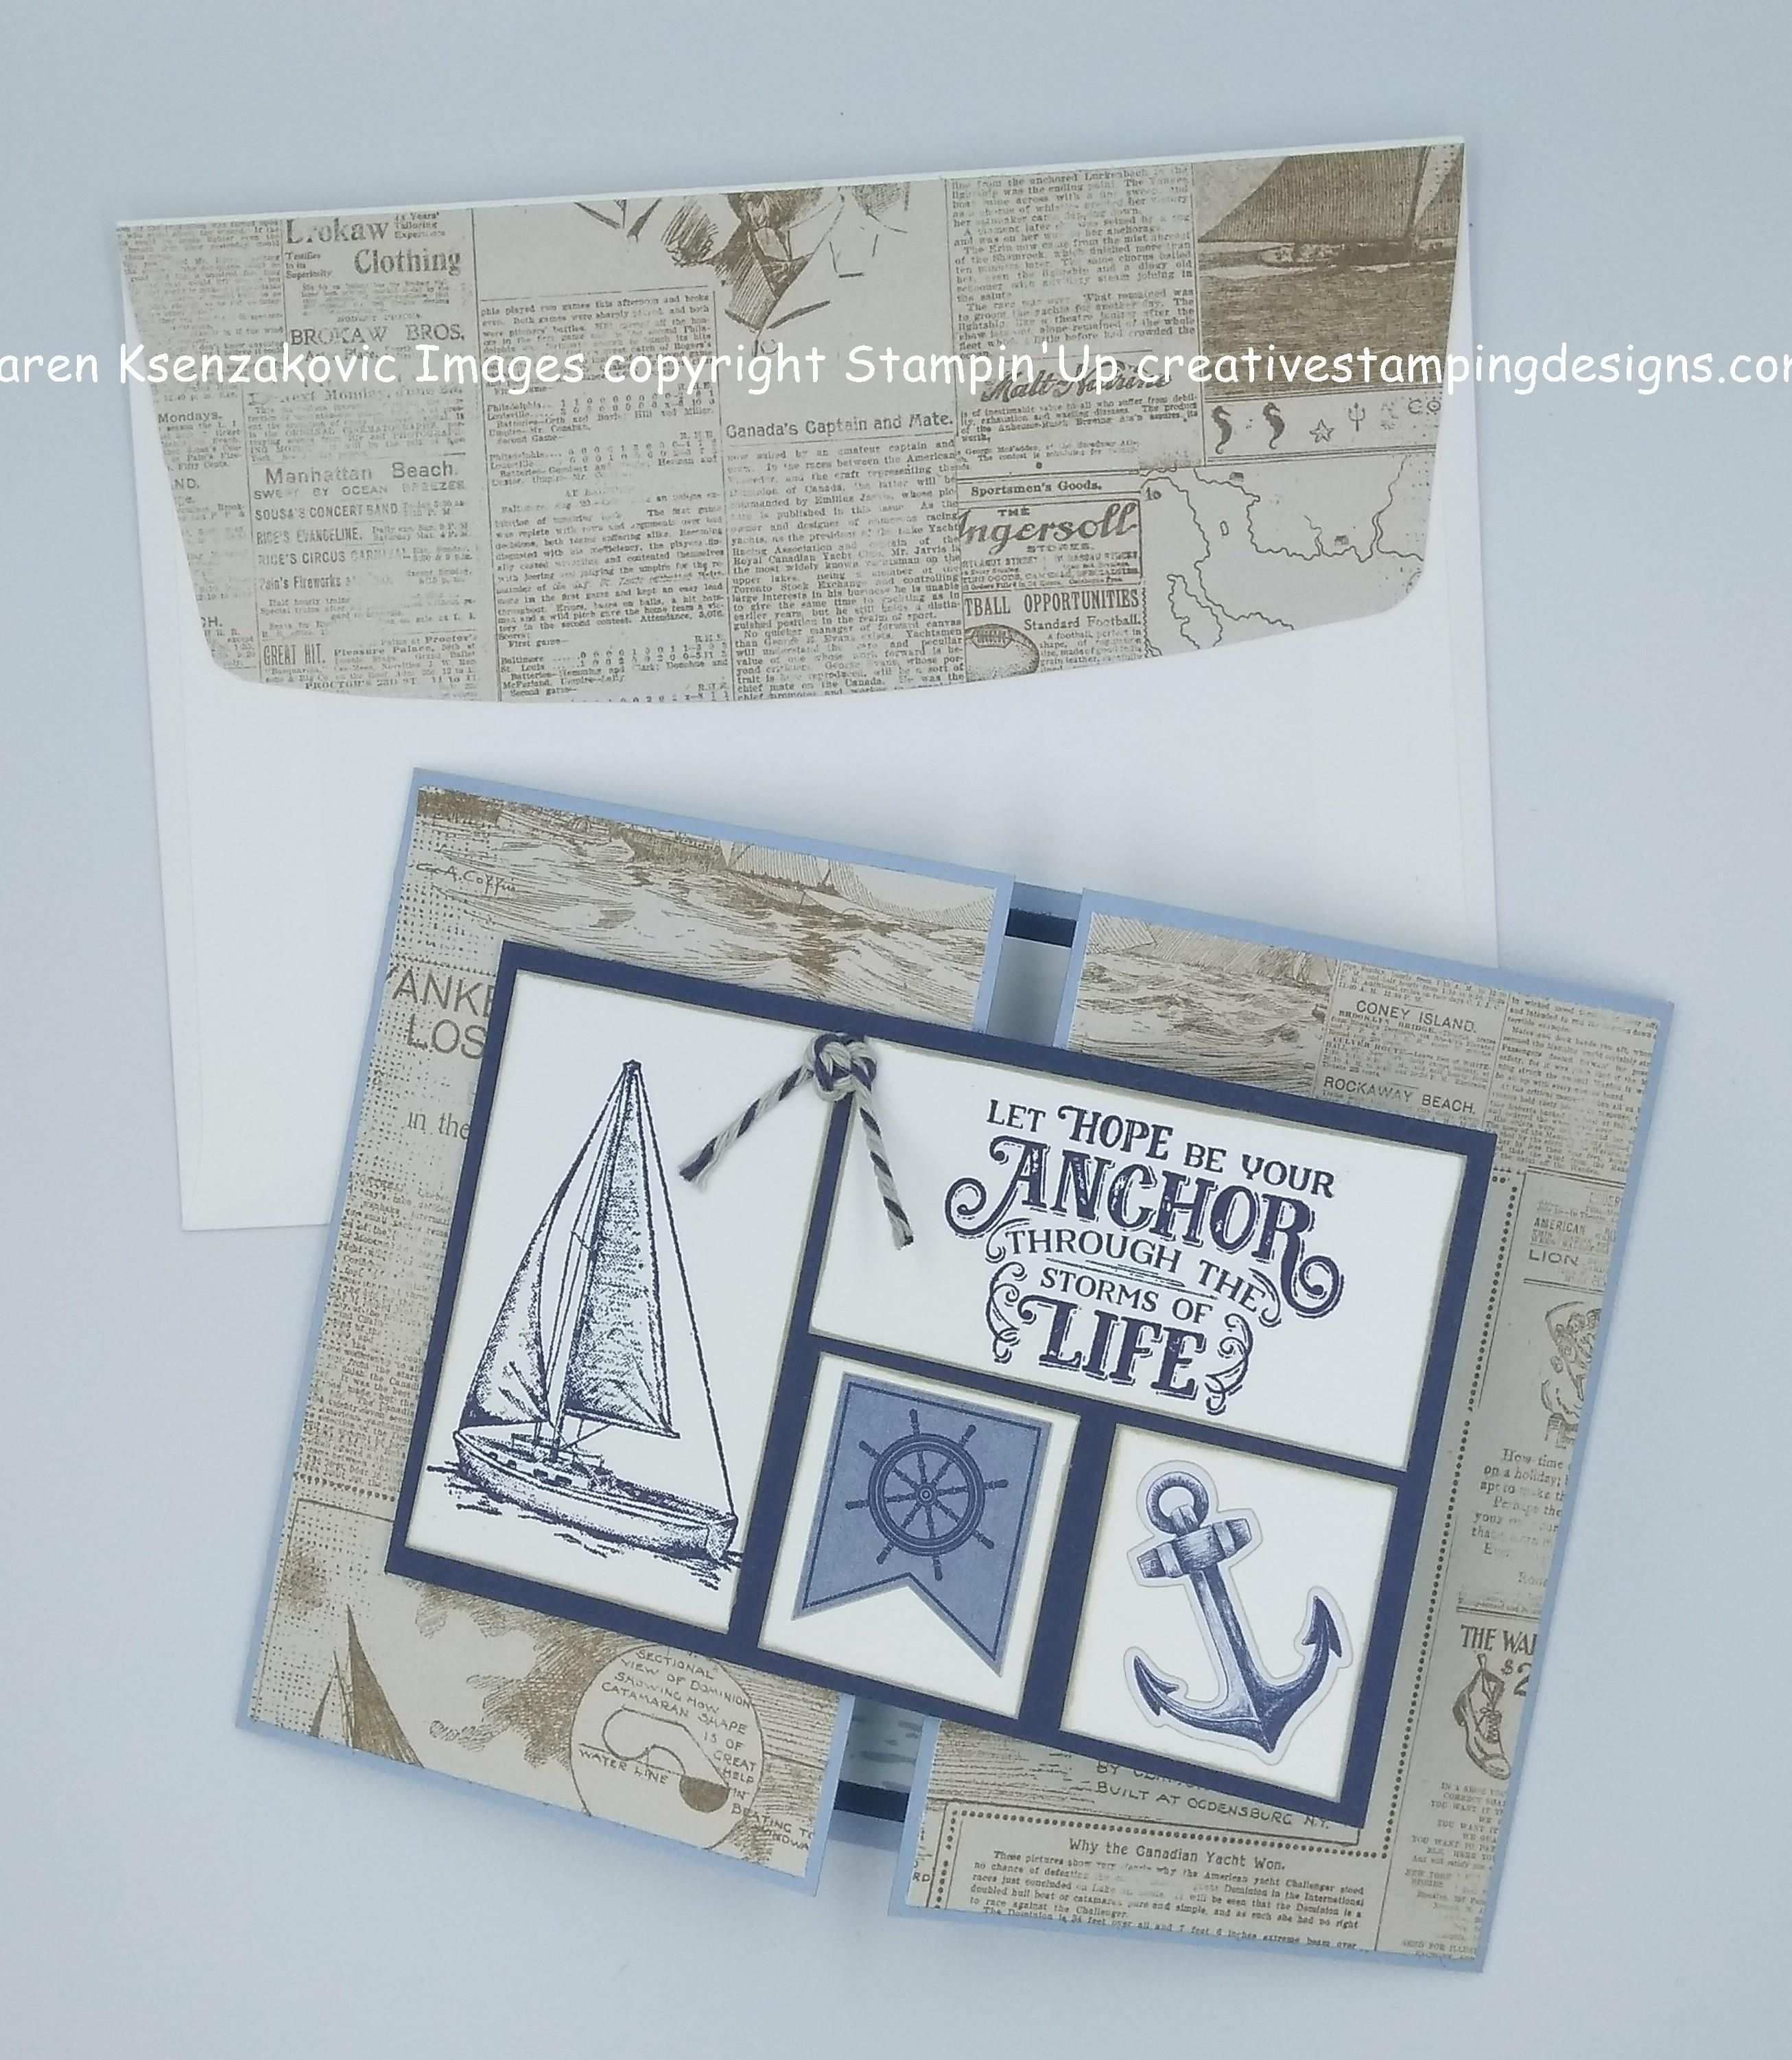 Stampin Up Sailing Home Sneak Peek For Amy S Inkin Krew Blog Hop Stamping Up Cards Stampin Up Stampin Up Cards